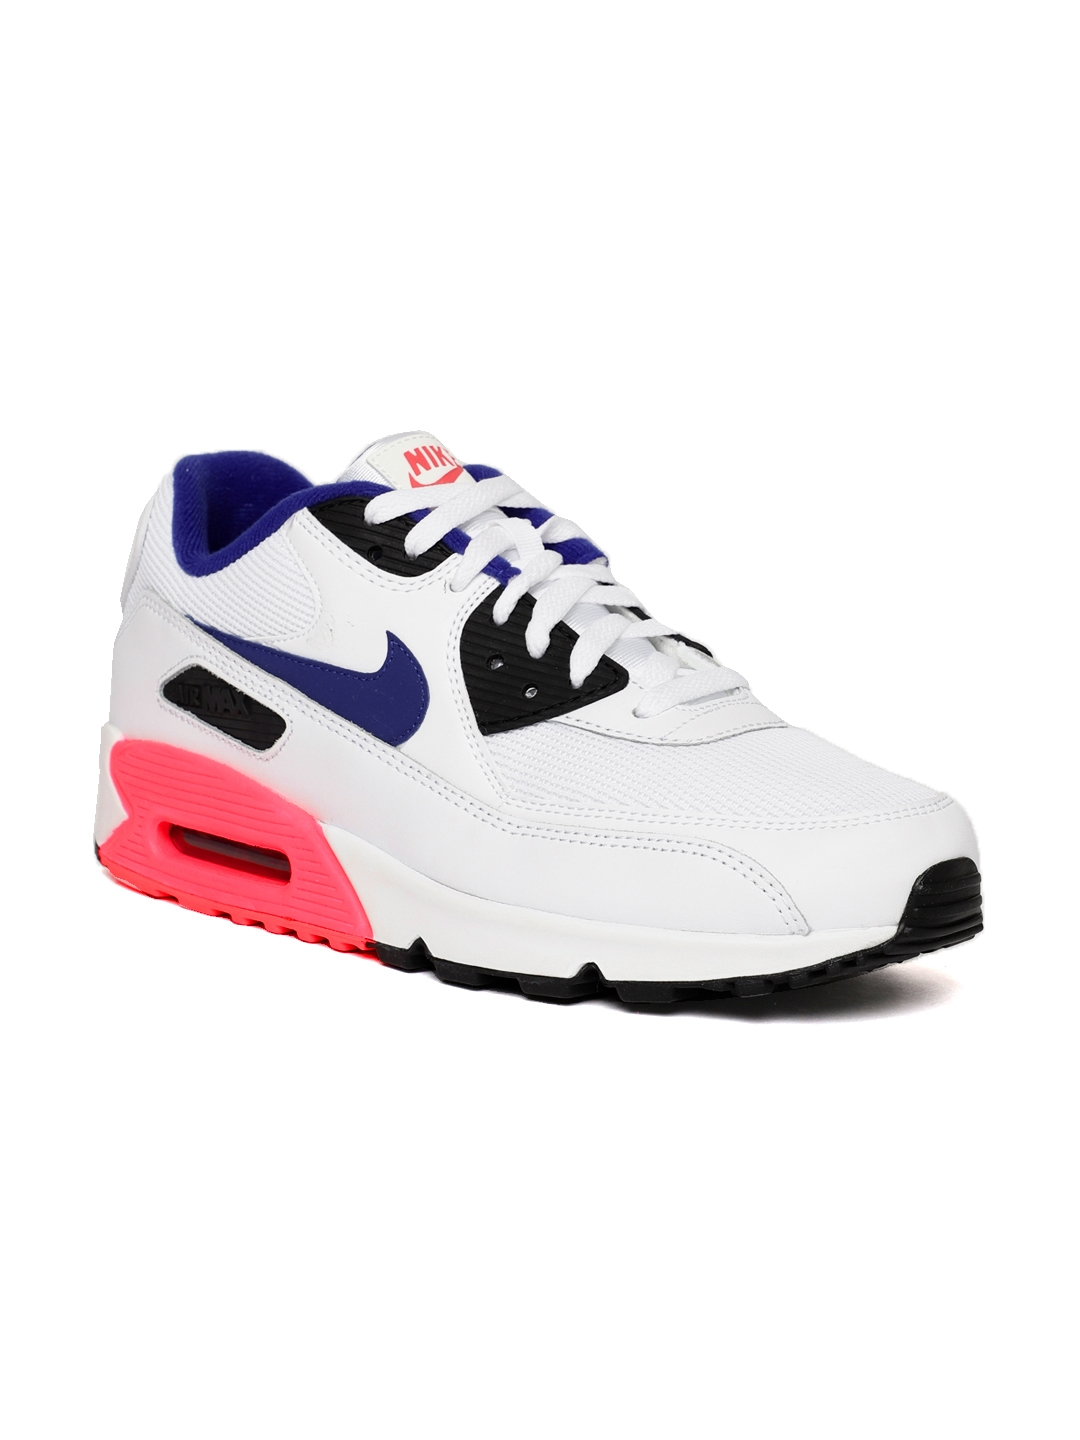 detailed look 69899 ed712 Nike Men White Air Max 90 Essential Leather Sneakers